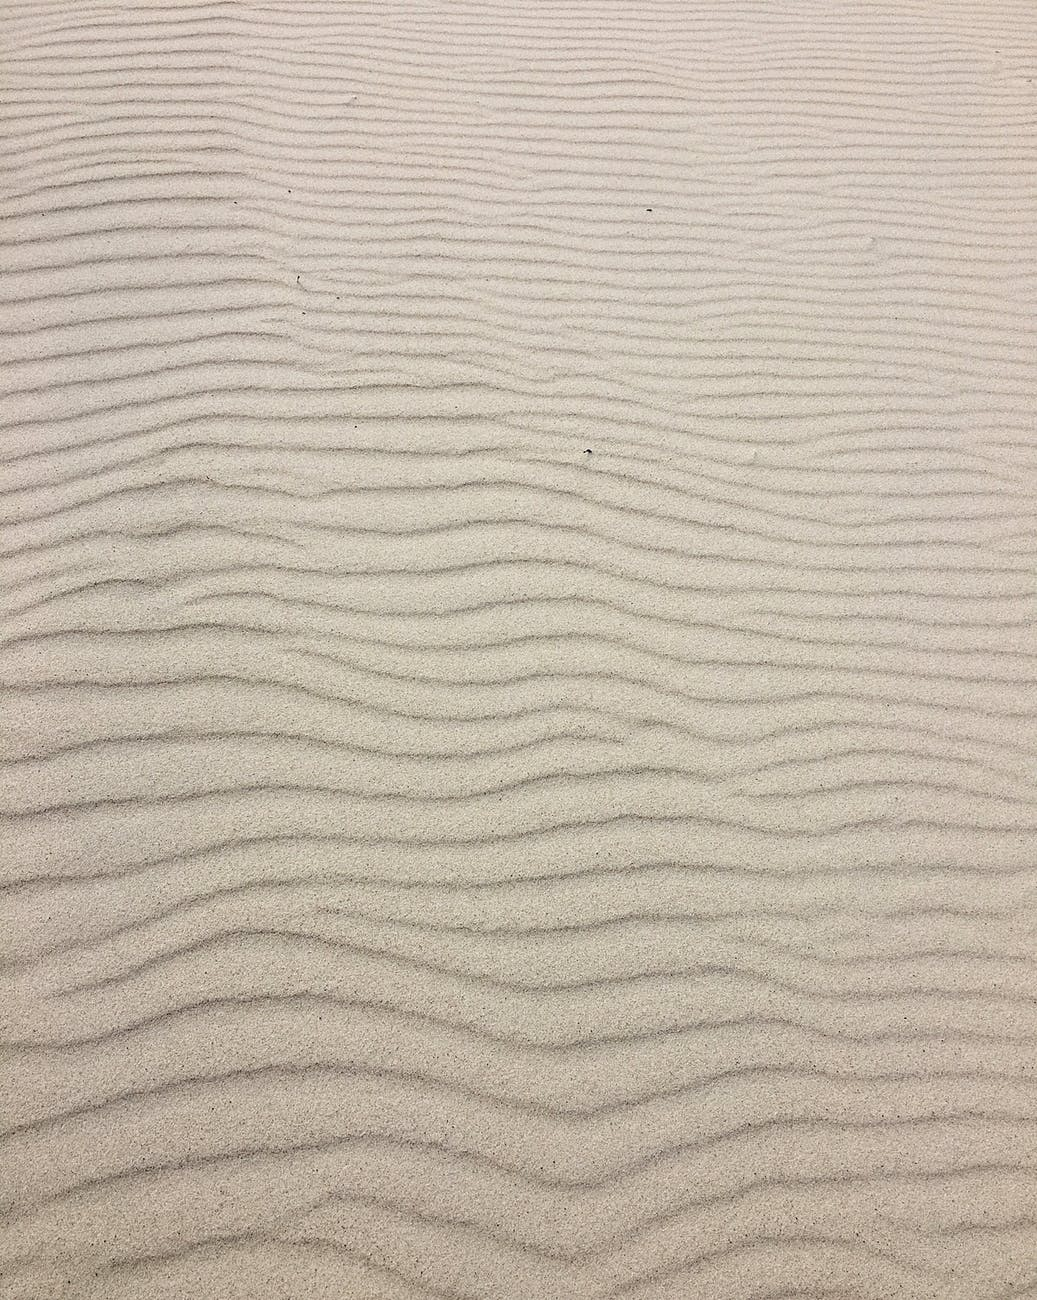 ripples in brown sand